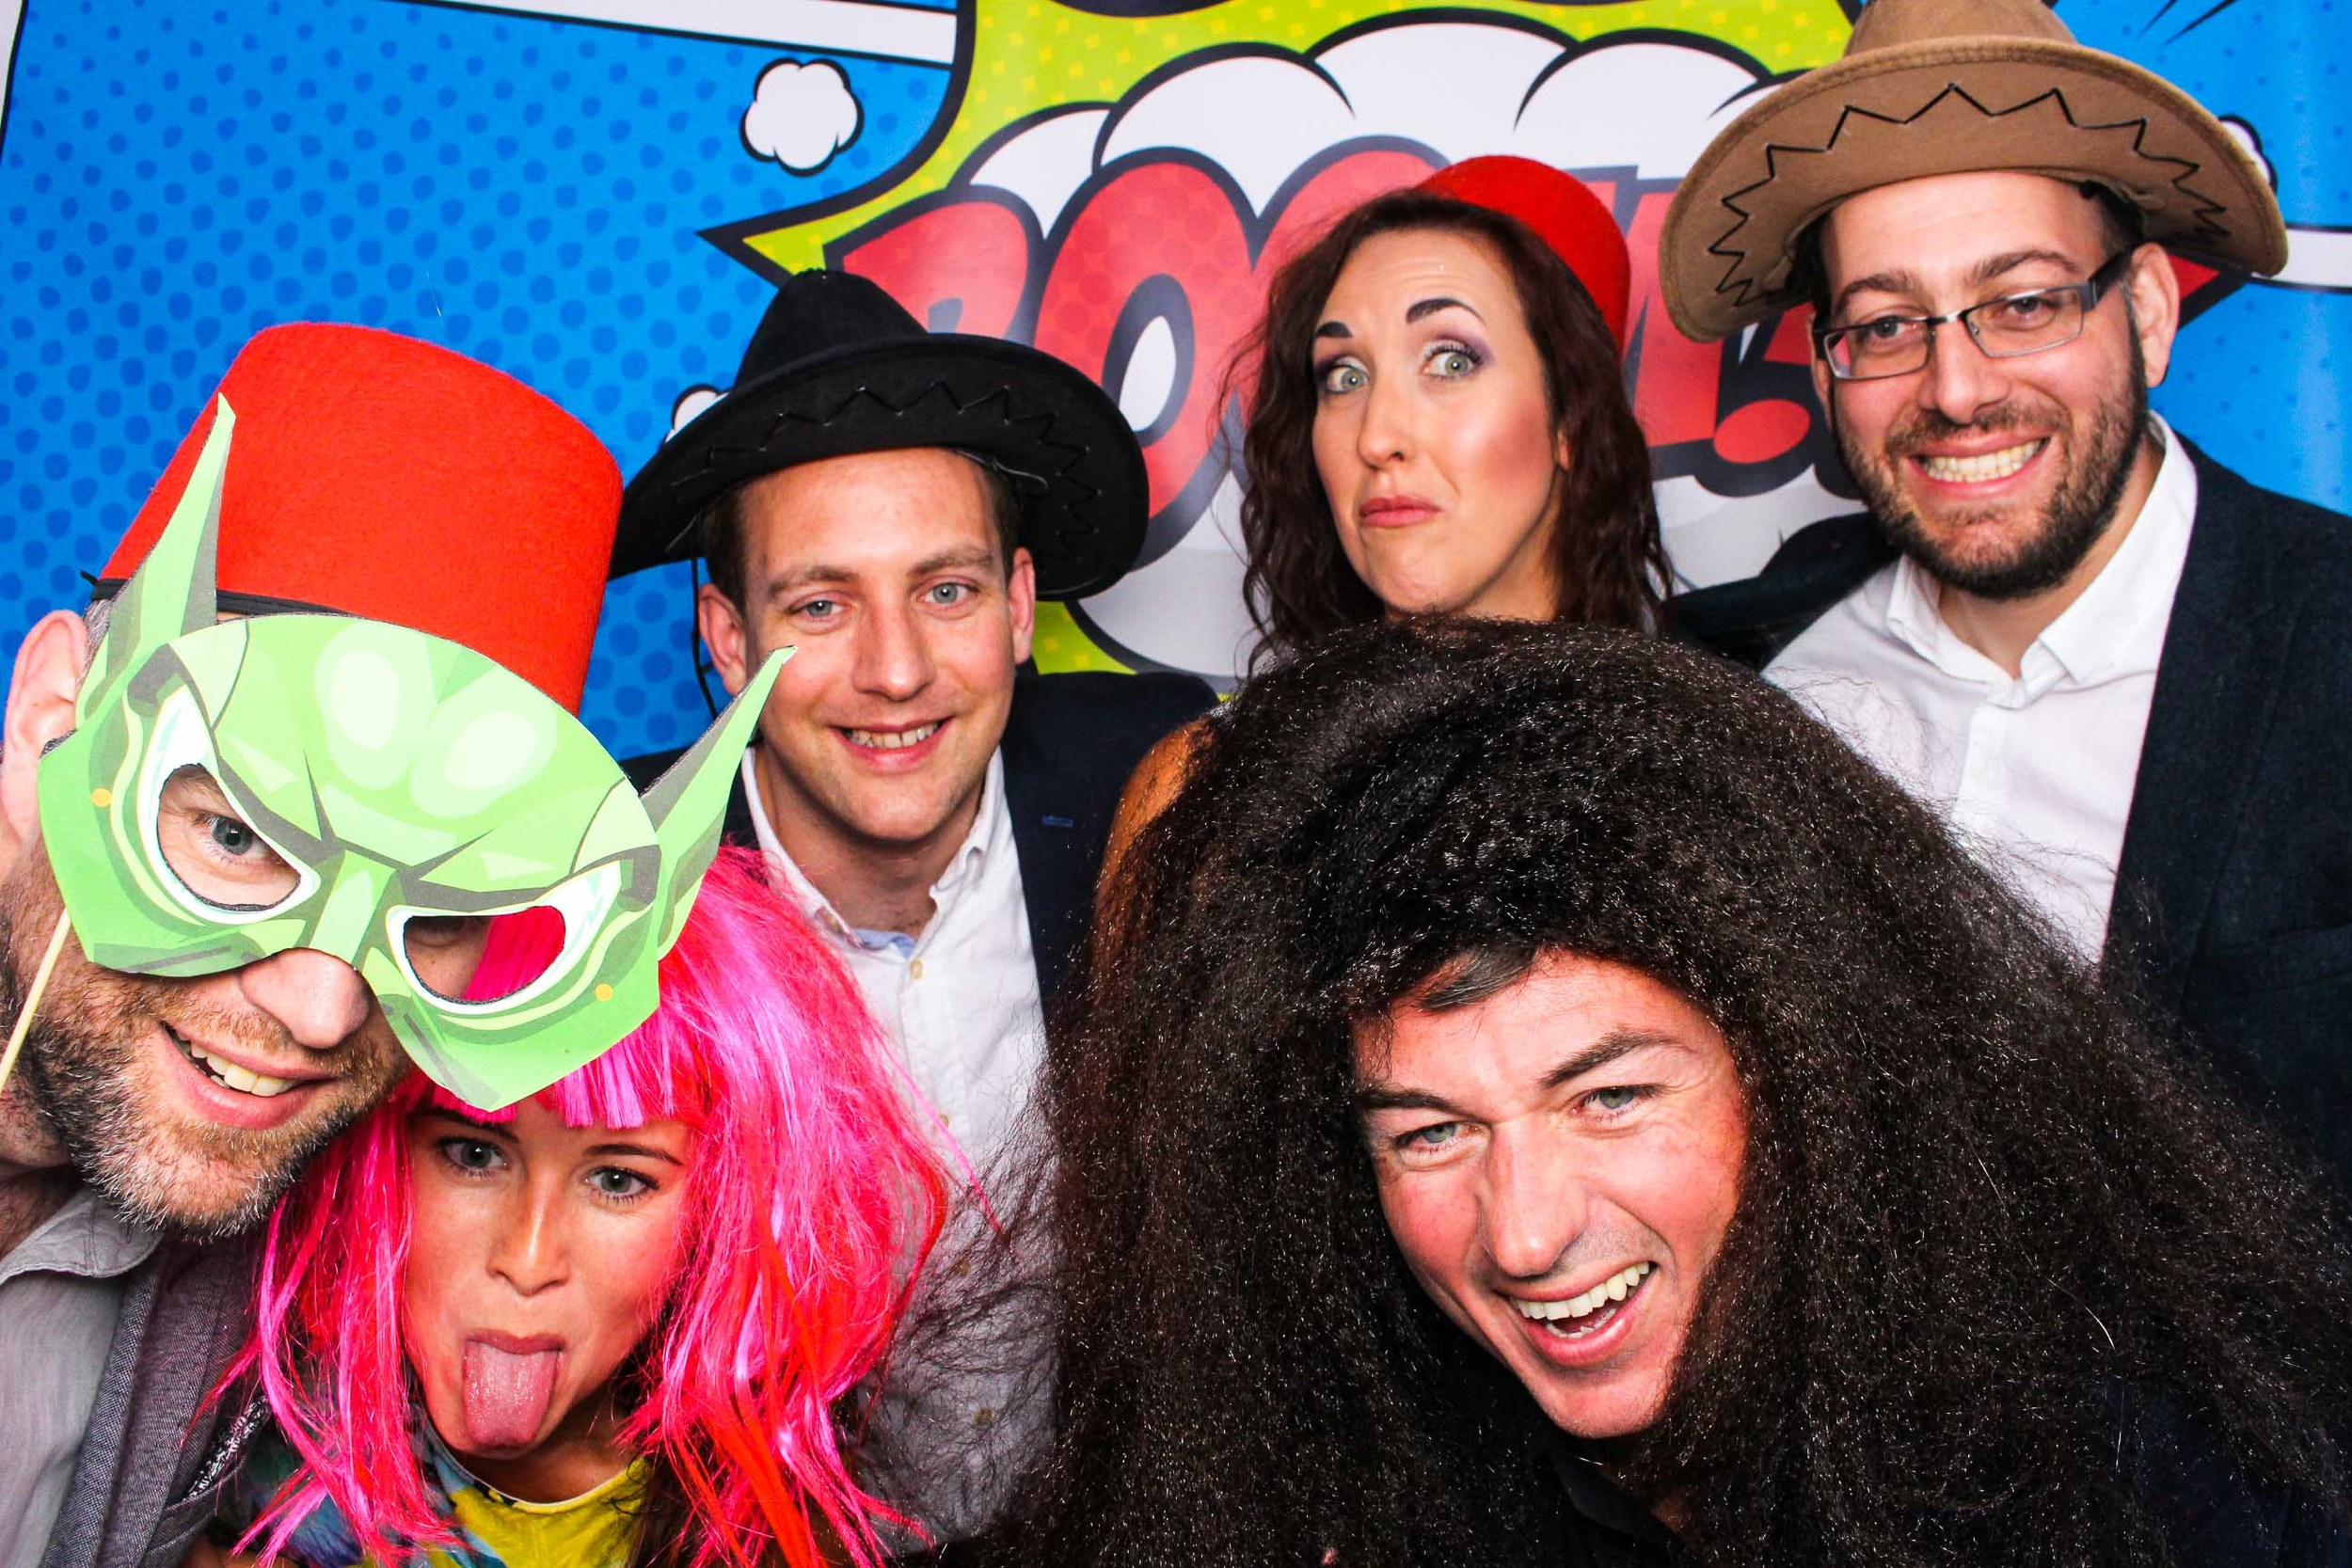 Fotoauto Photo Booth Hire - Shop Direct-257.jpg